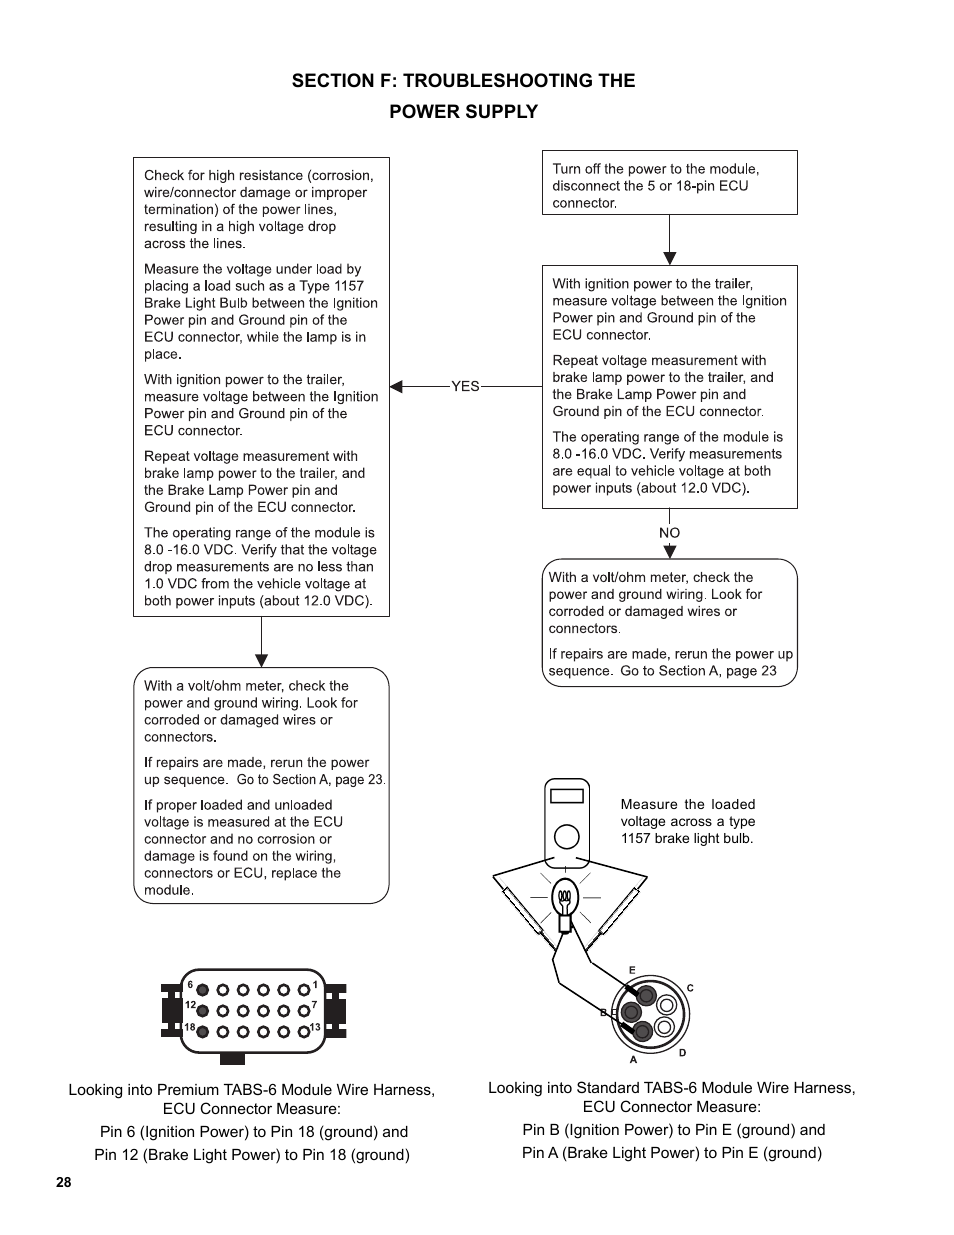 Bendix Commercial Vehicle Systems Tabs 6 Trailer Abs Module User 18 Pin Connector Wiring Harness Manual Page 28 32